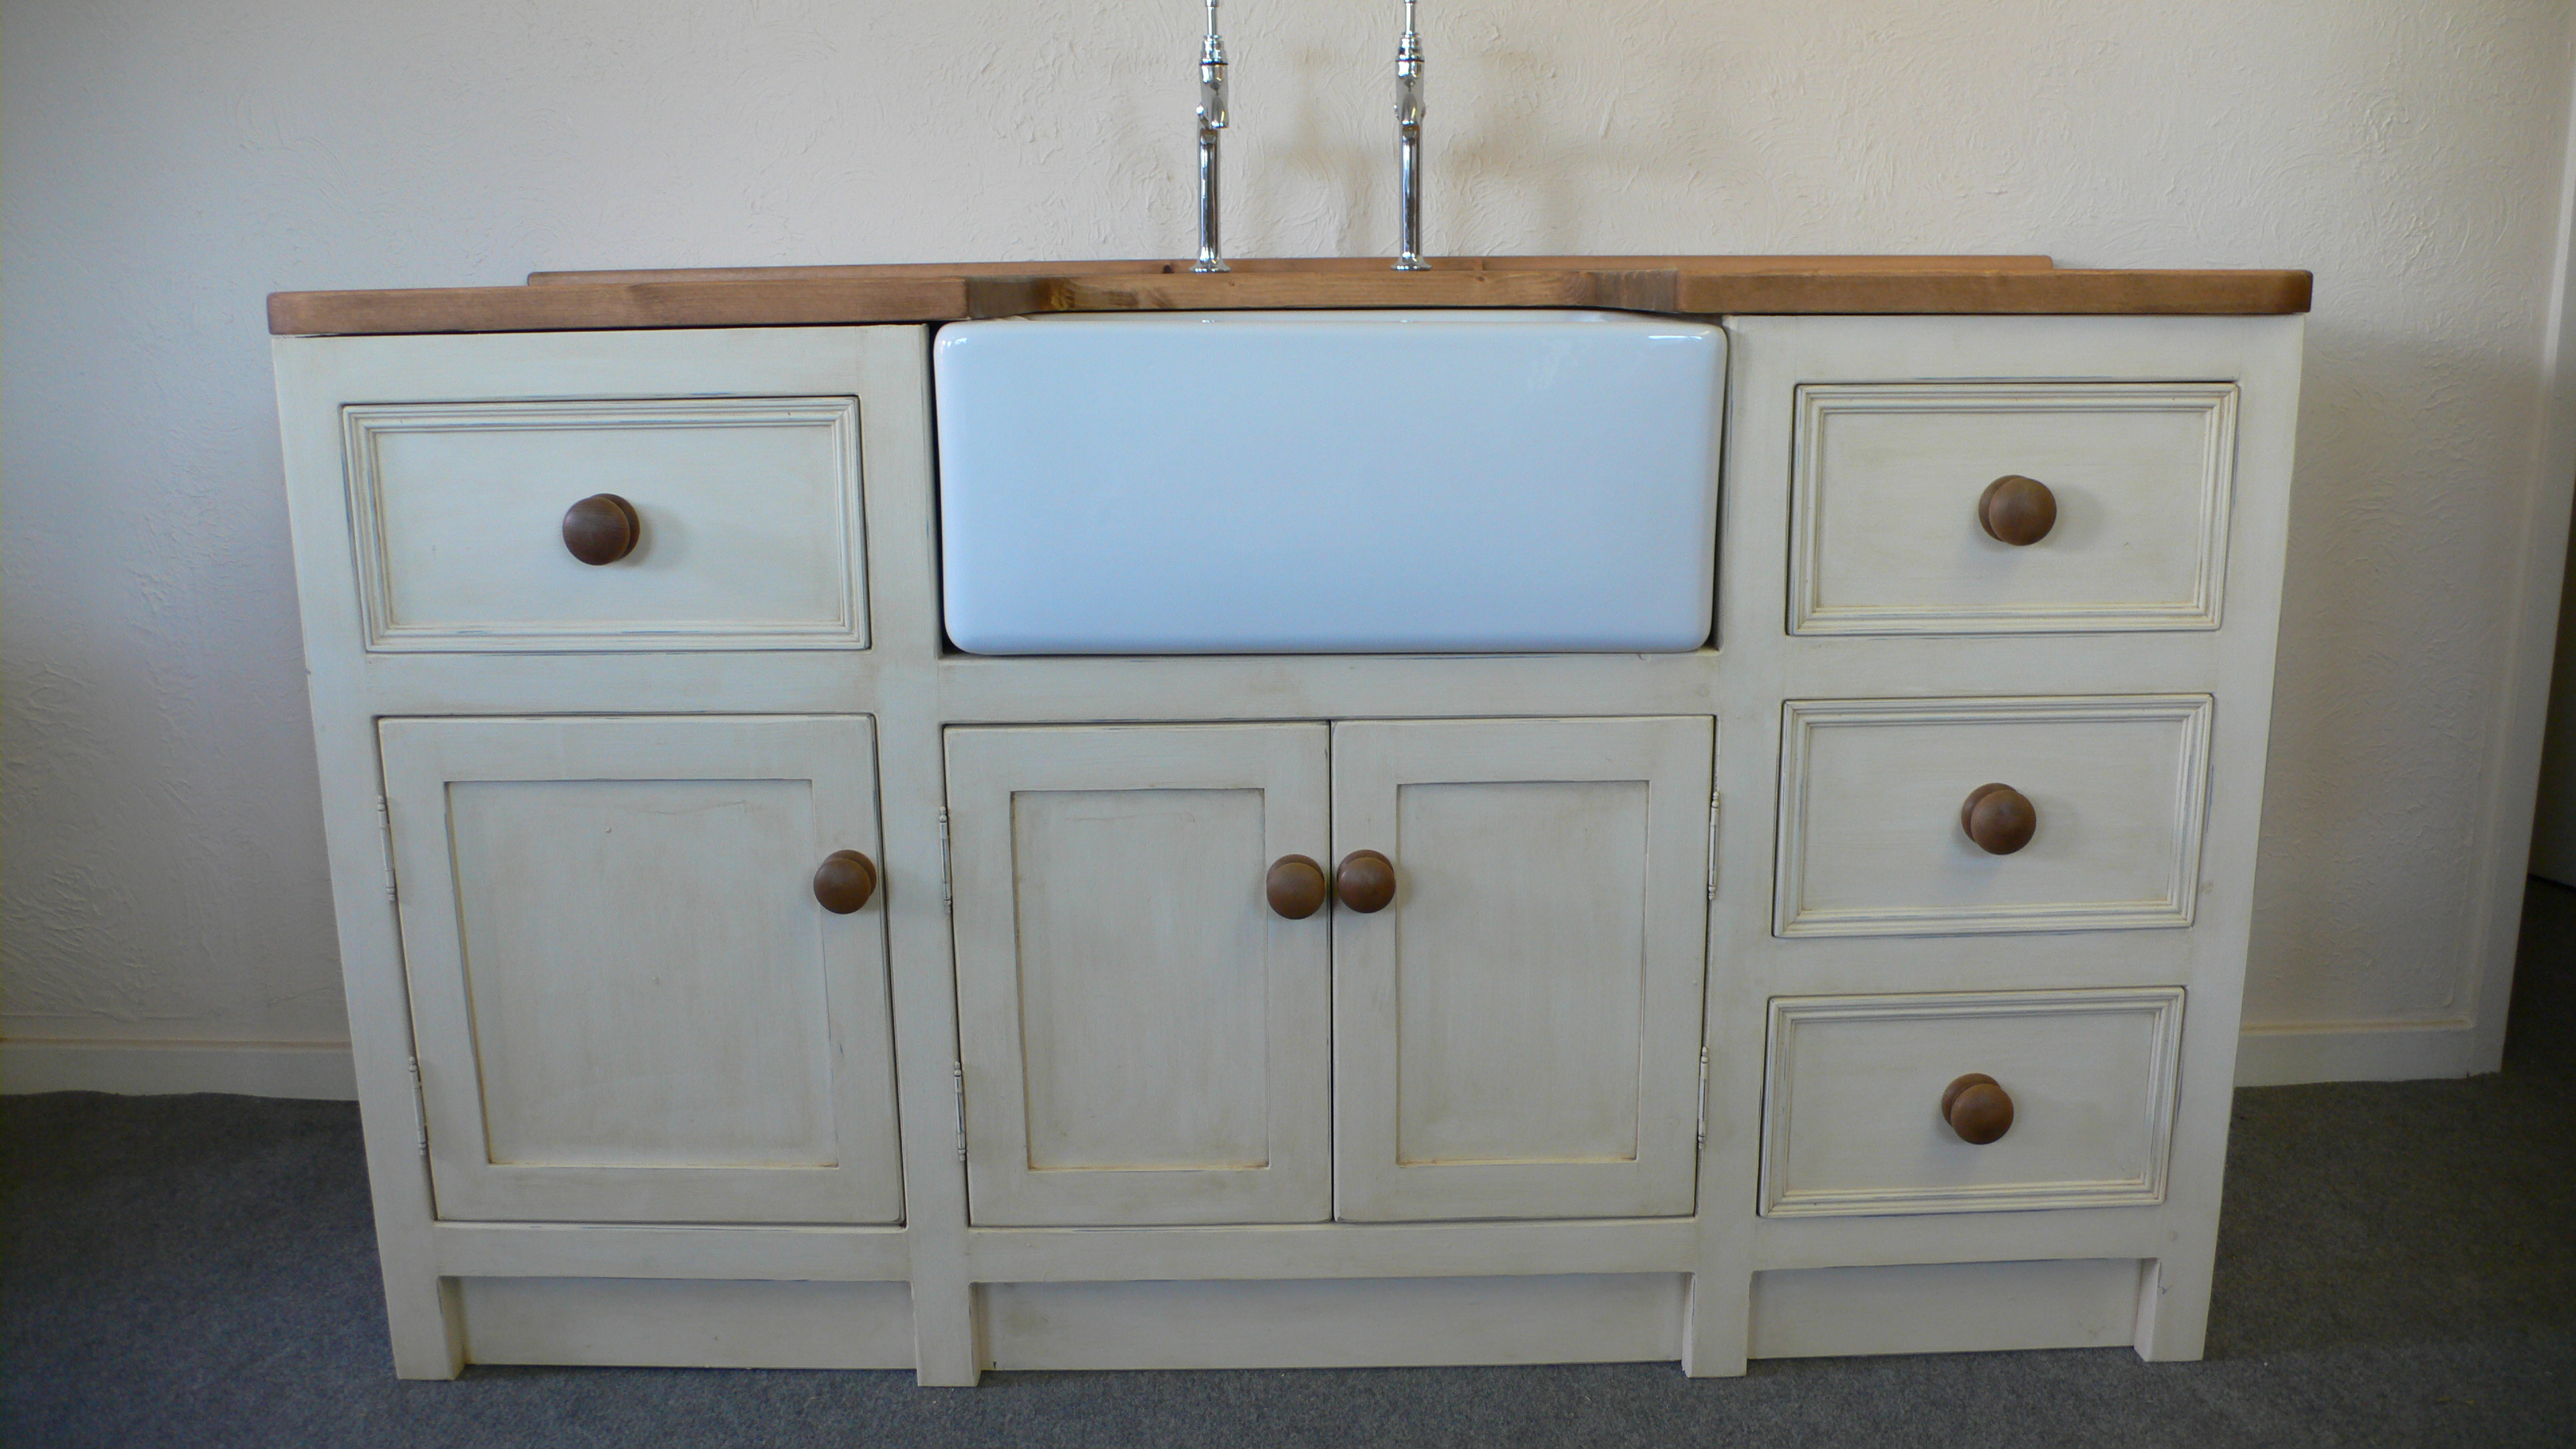 Belfast Sink Unit With Shabby Chic Style Finish The